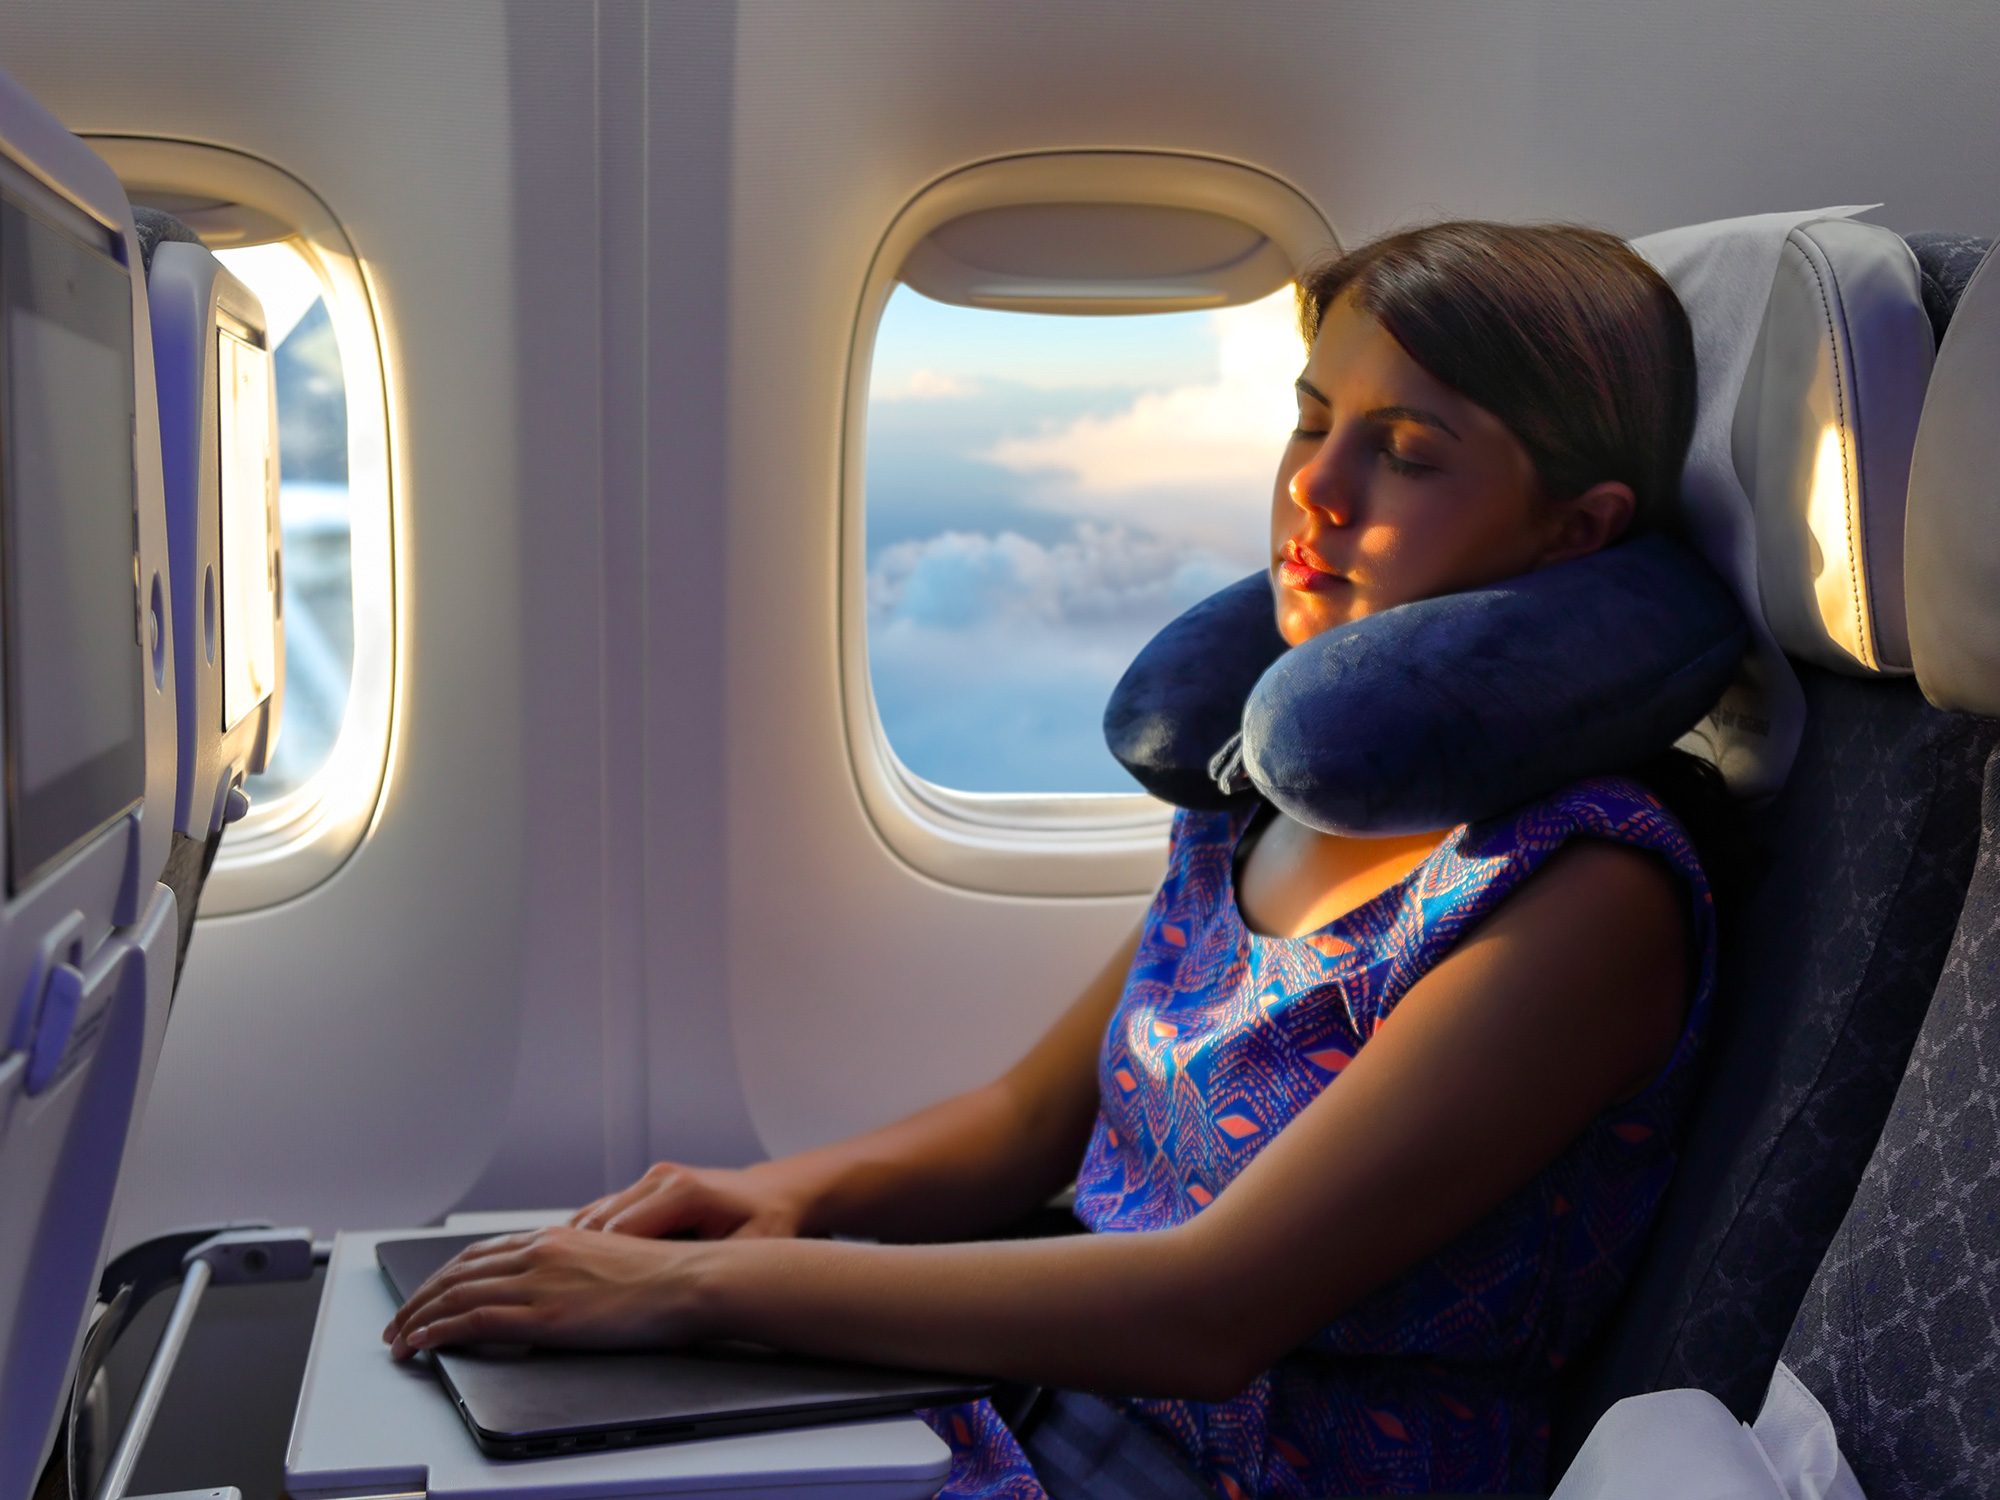 8 Neck Pillows That Won't Embarrass You on the Plane | SmarterTravel